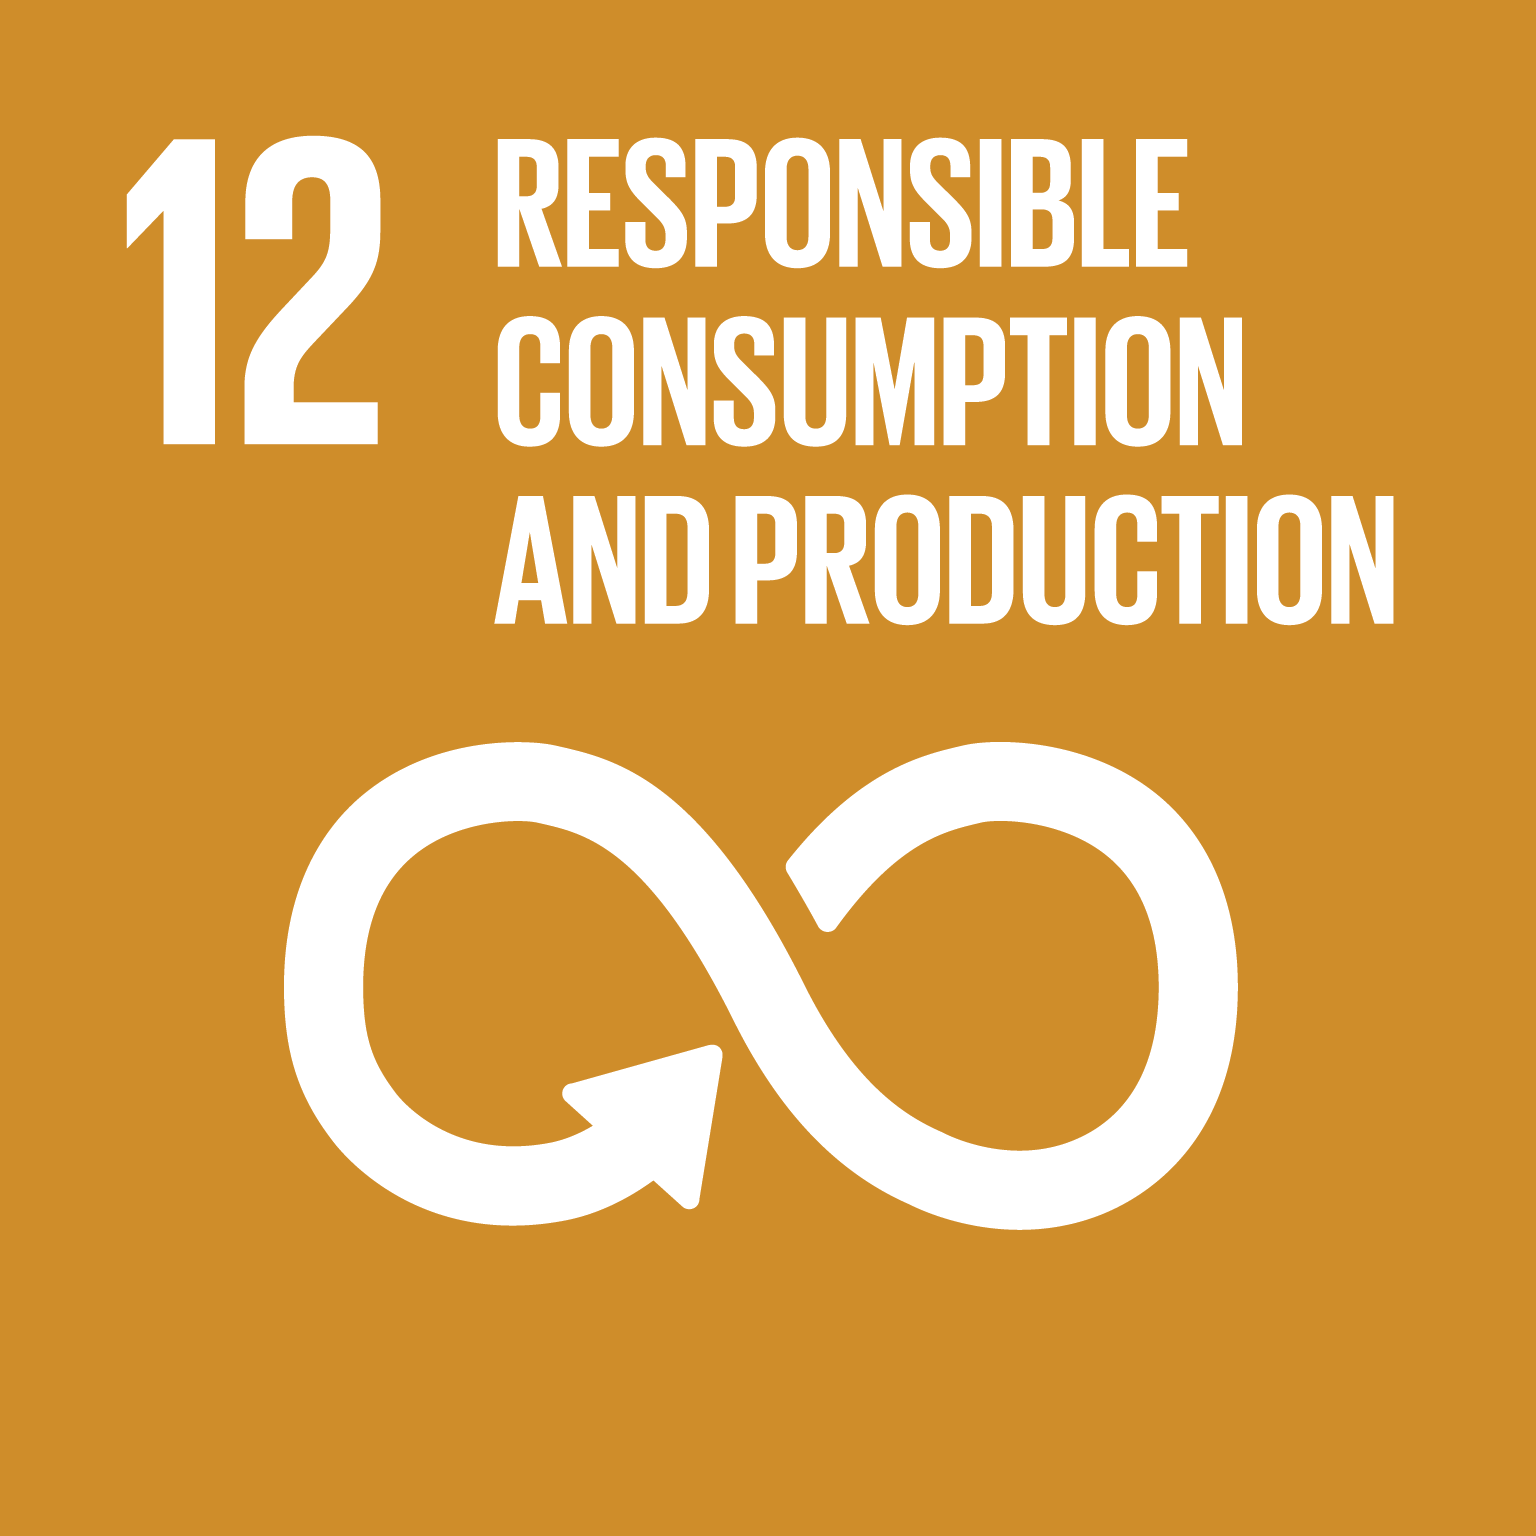 Goal 12 Sustainable Development Knowledge Platform